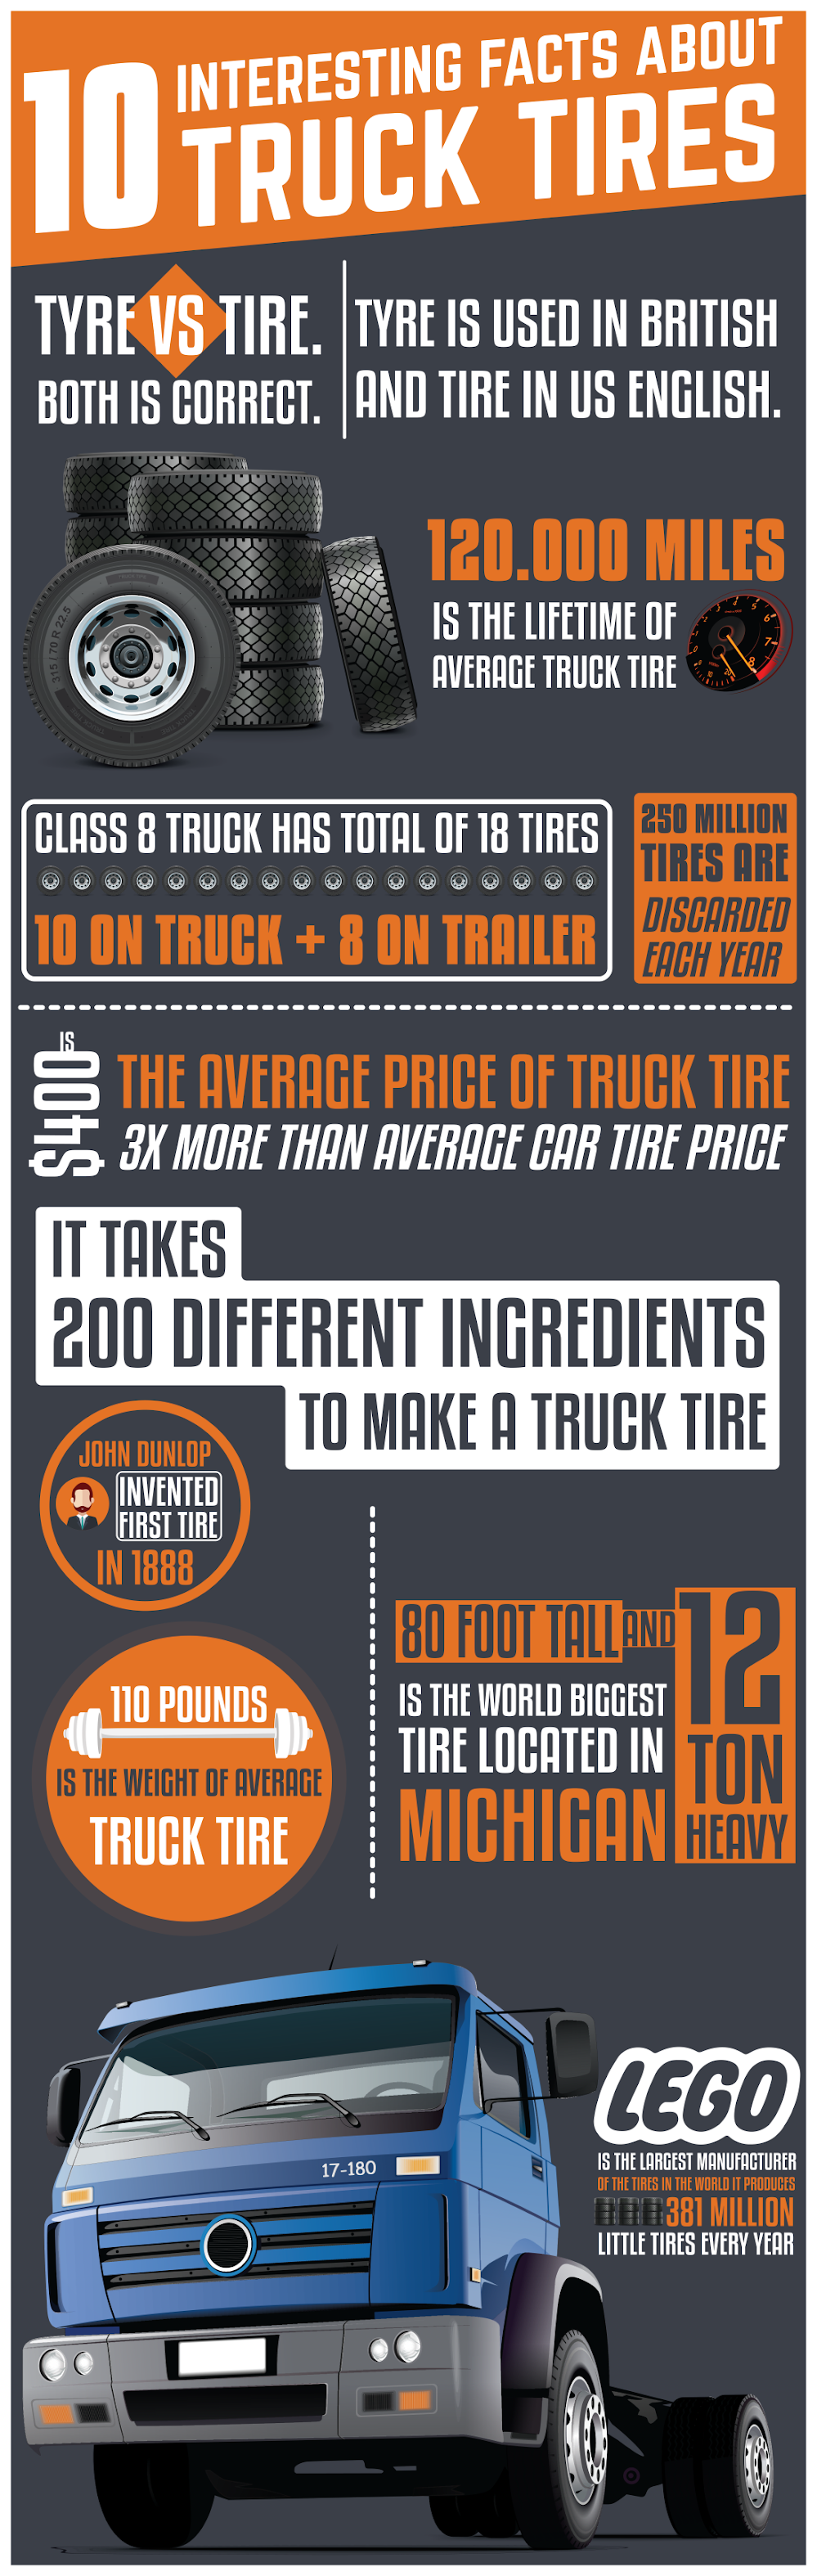 10 Interesting Facts About Truck Tires #infographic